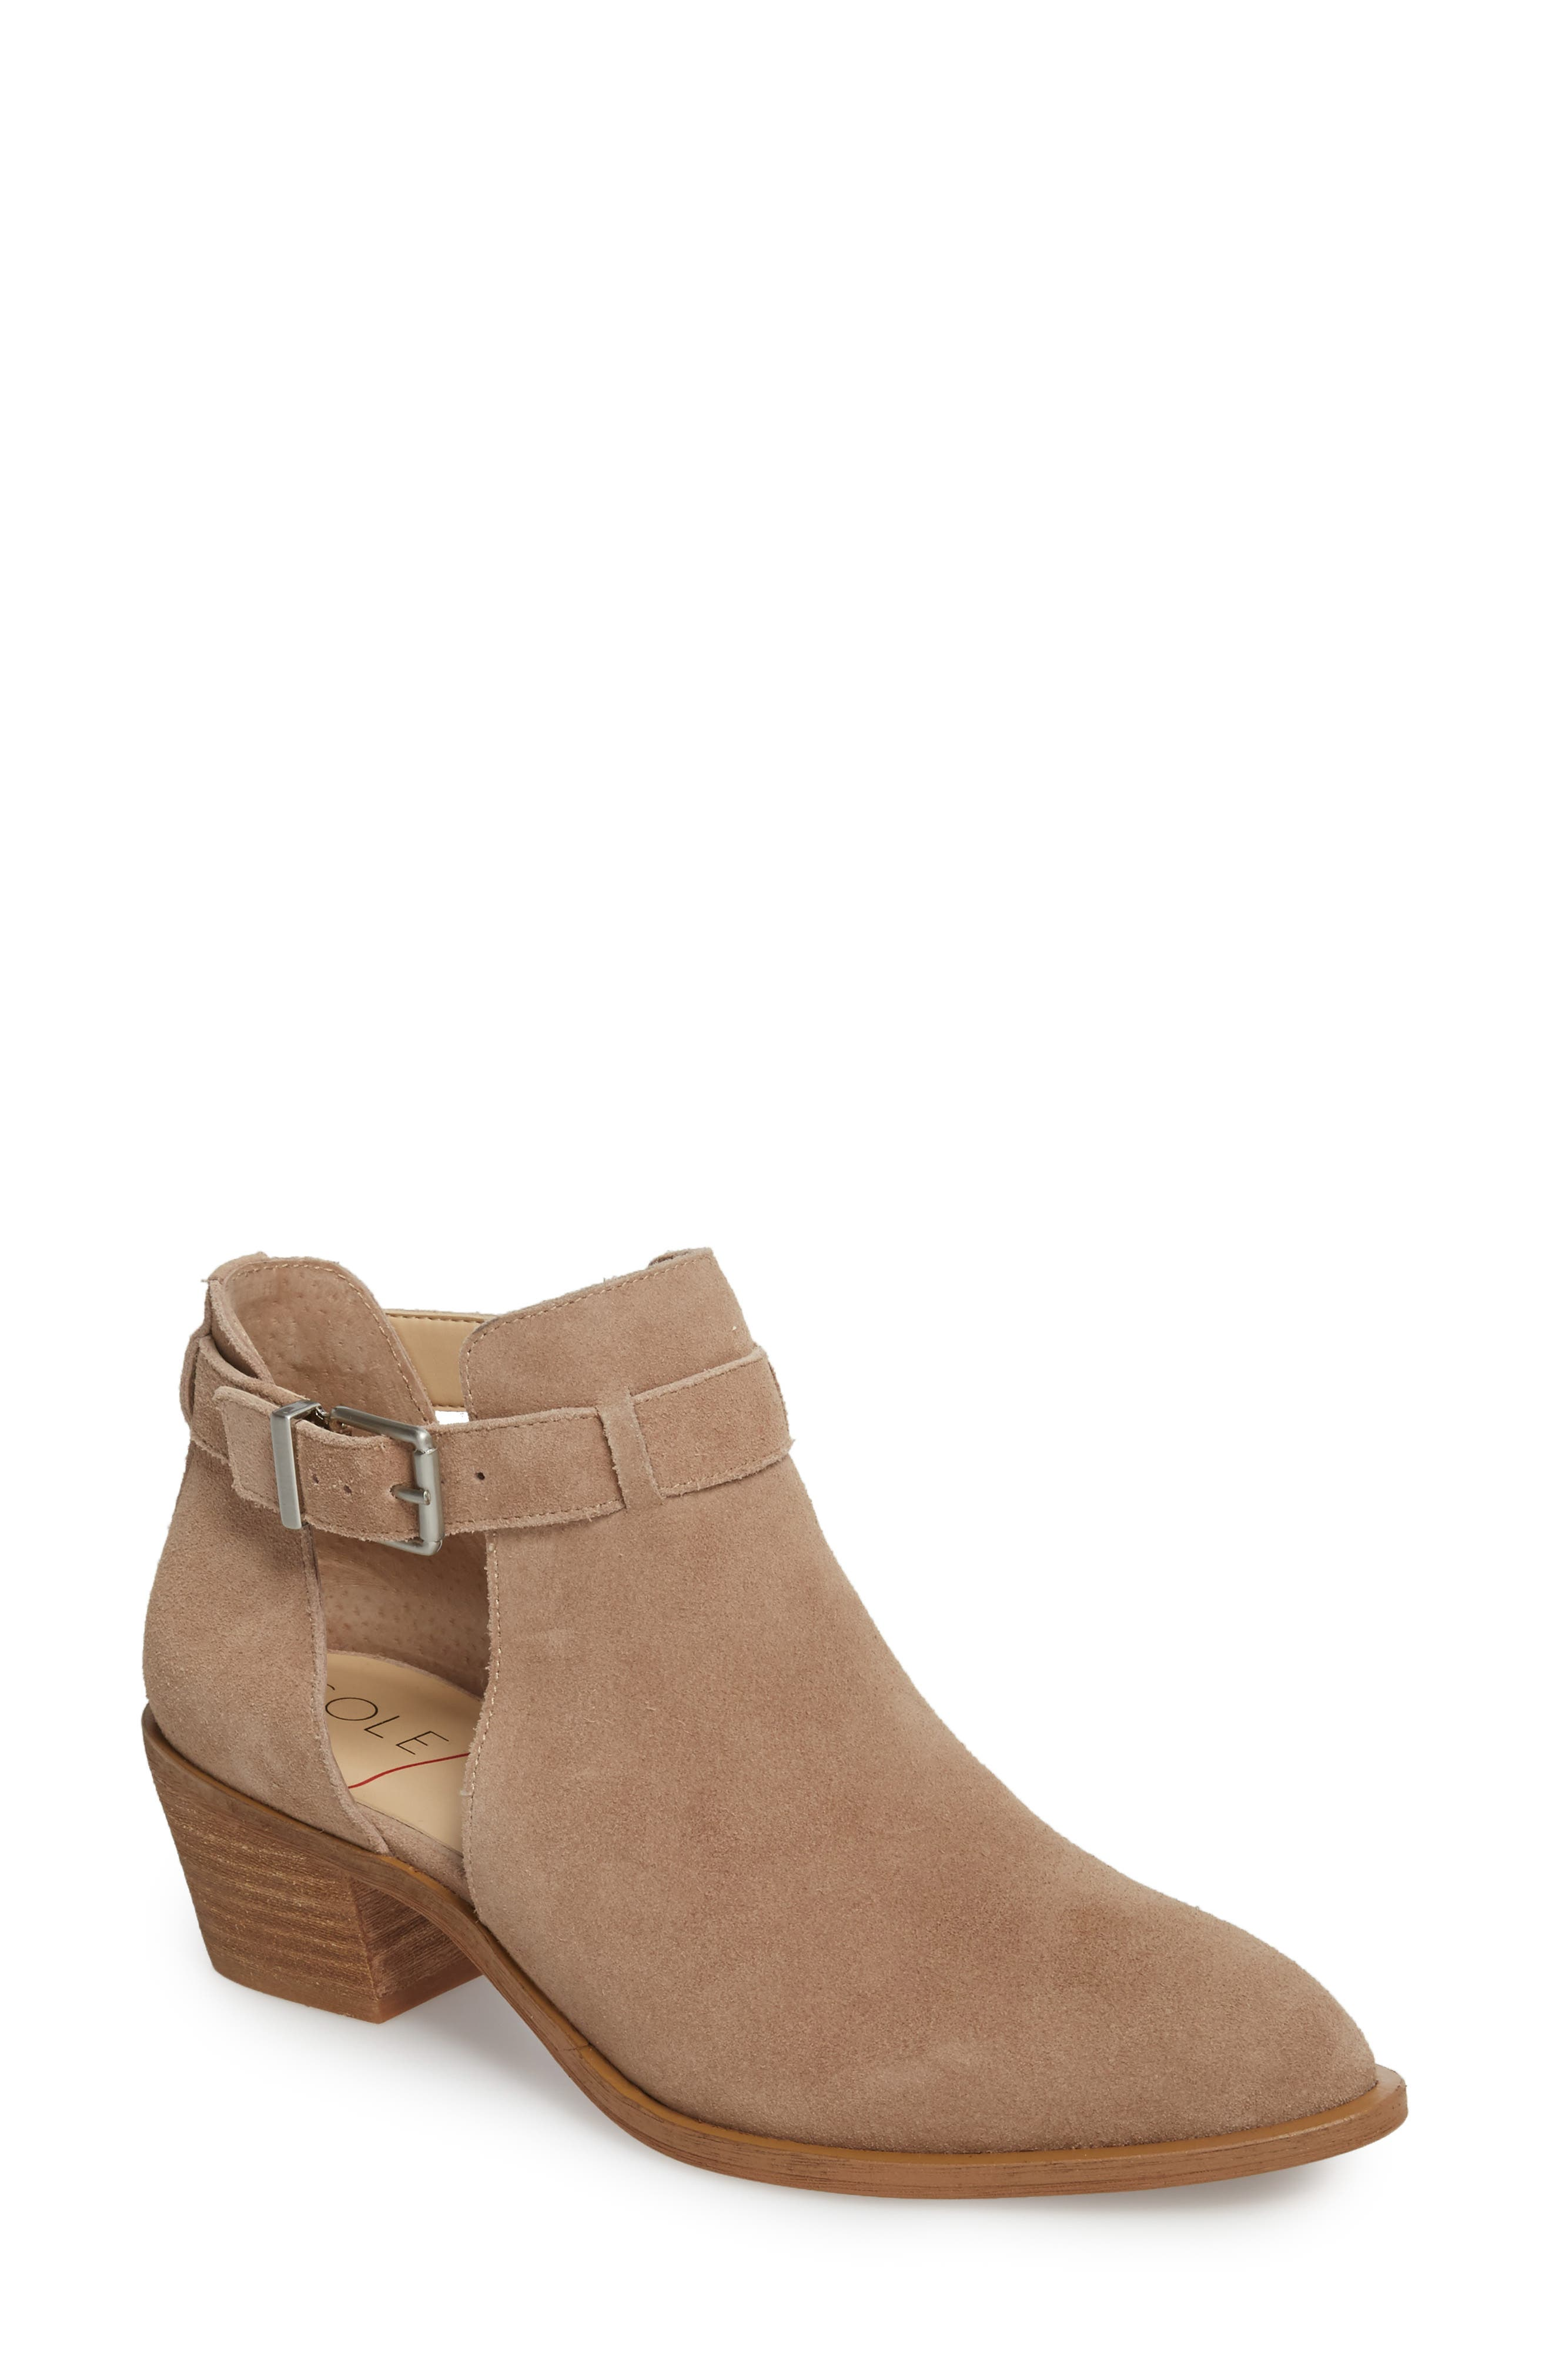 Nahia Cutout Bootie,                         Main,                         color, Warm Taupe Cow Suede